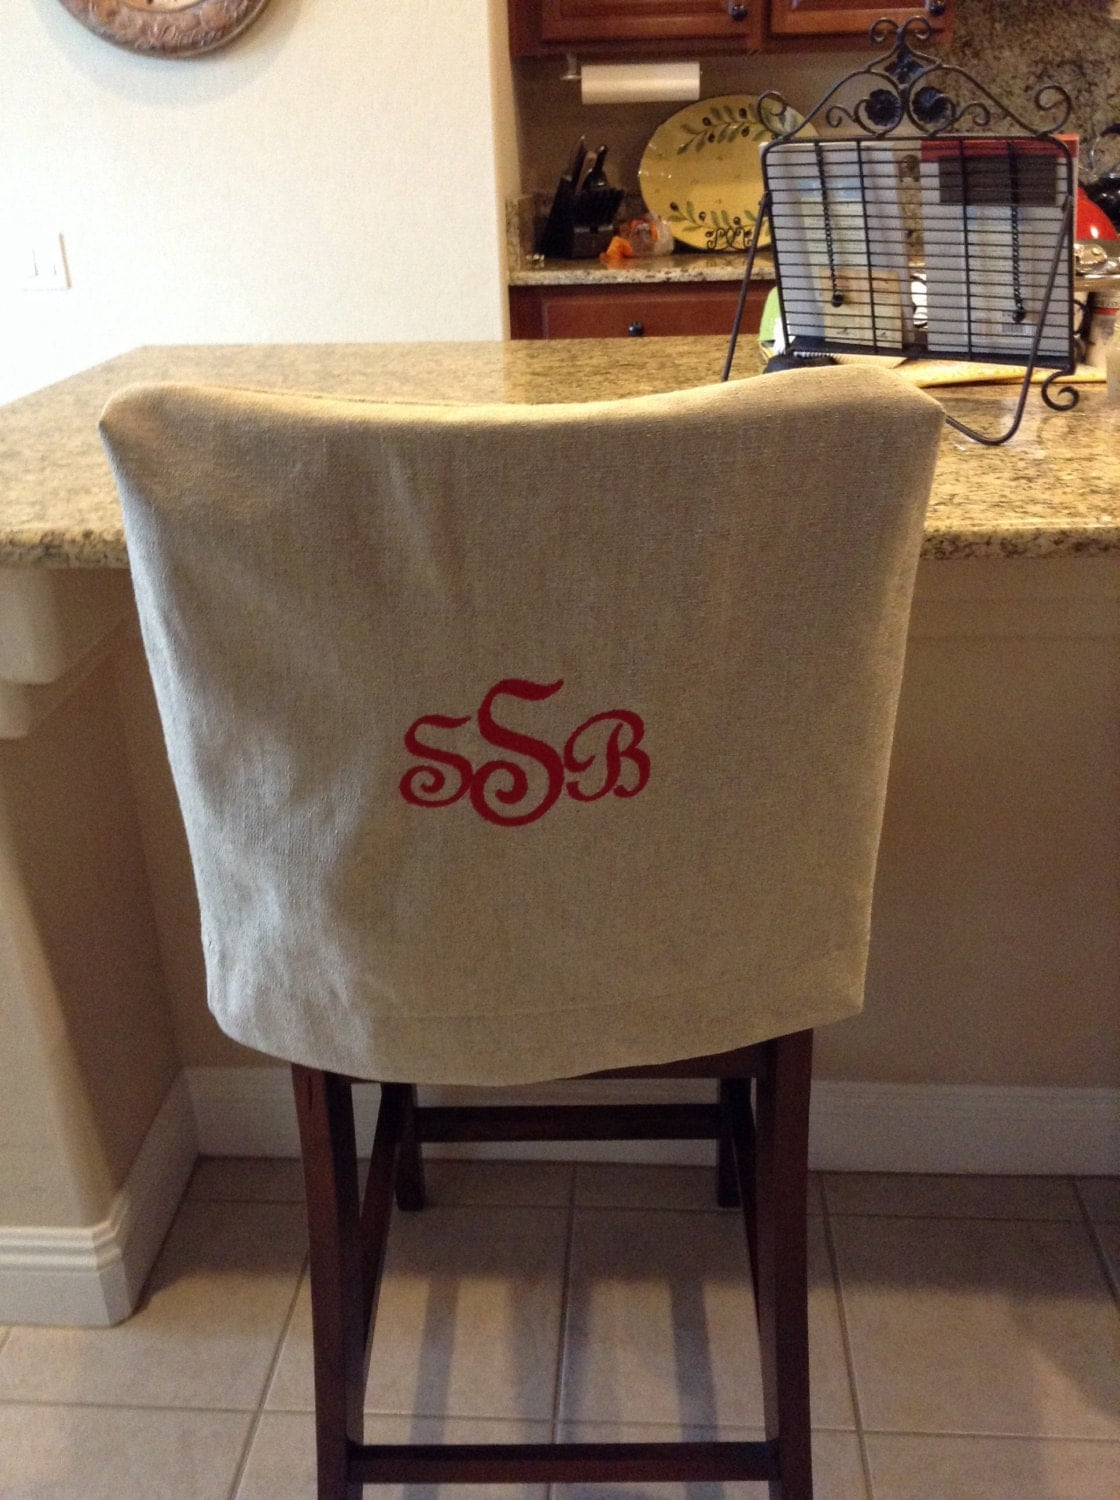 Monogrammed Chair Back Cover Natural Linen washable fabric : ilfullxfull859153006gdk5 from www.etsy.com size 1120 x 1500 jpeg 306kB